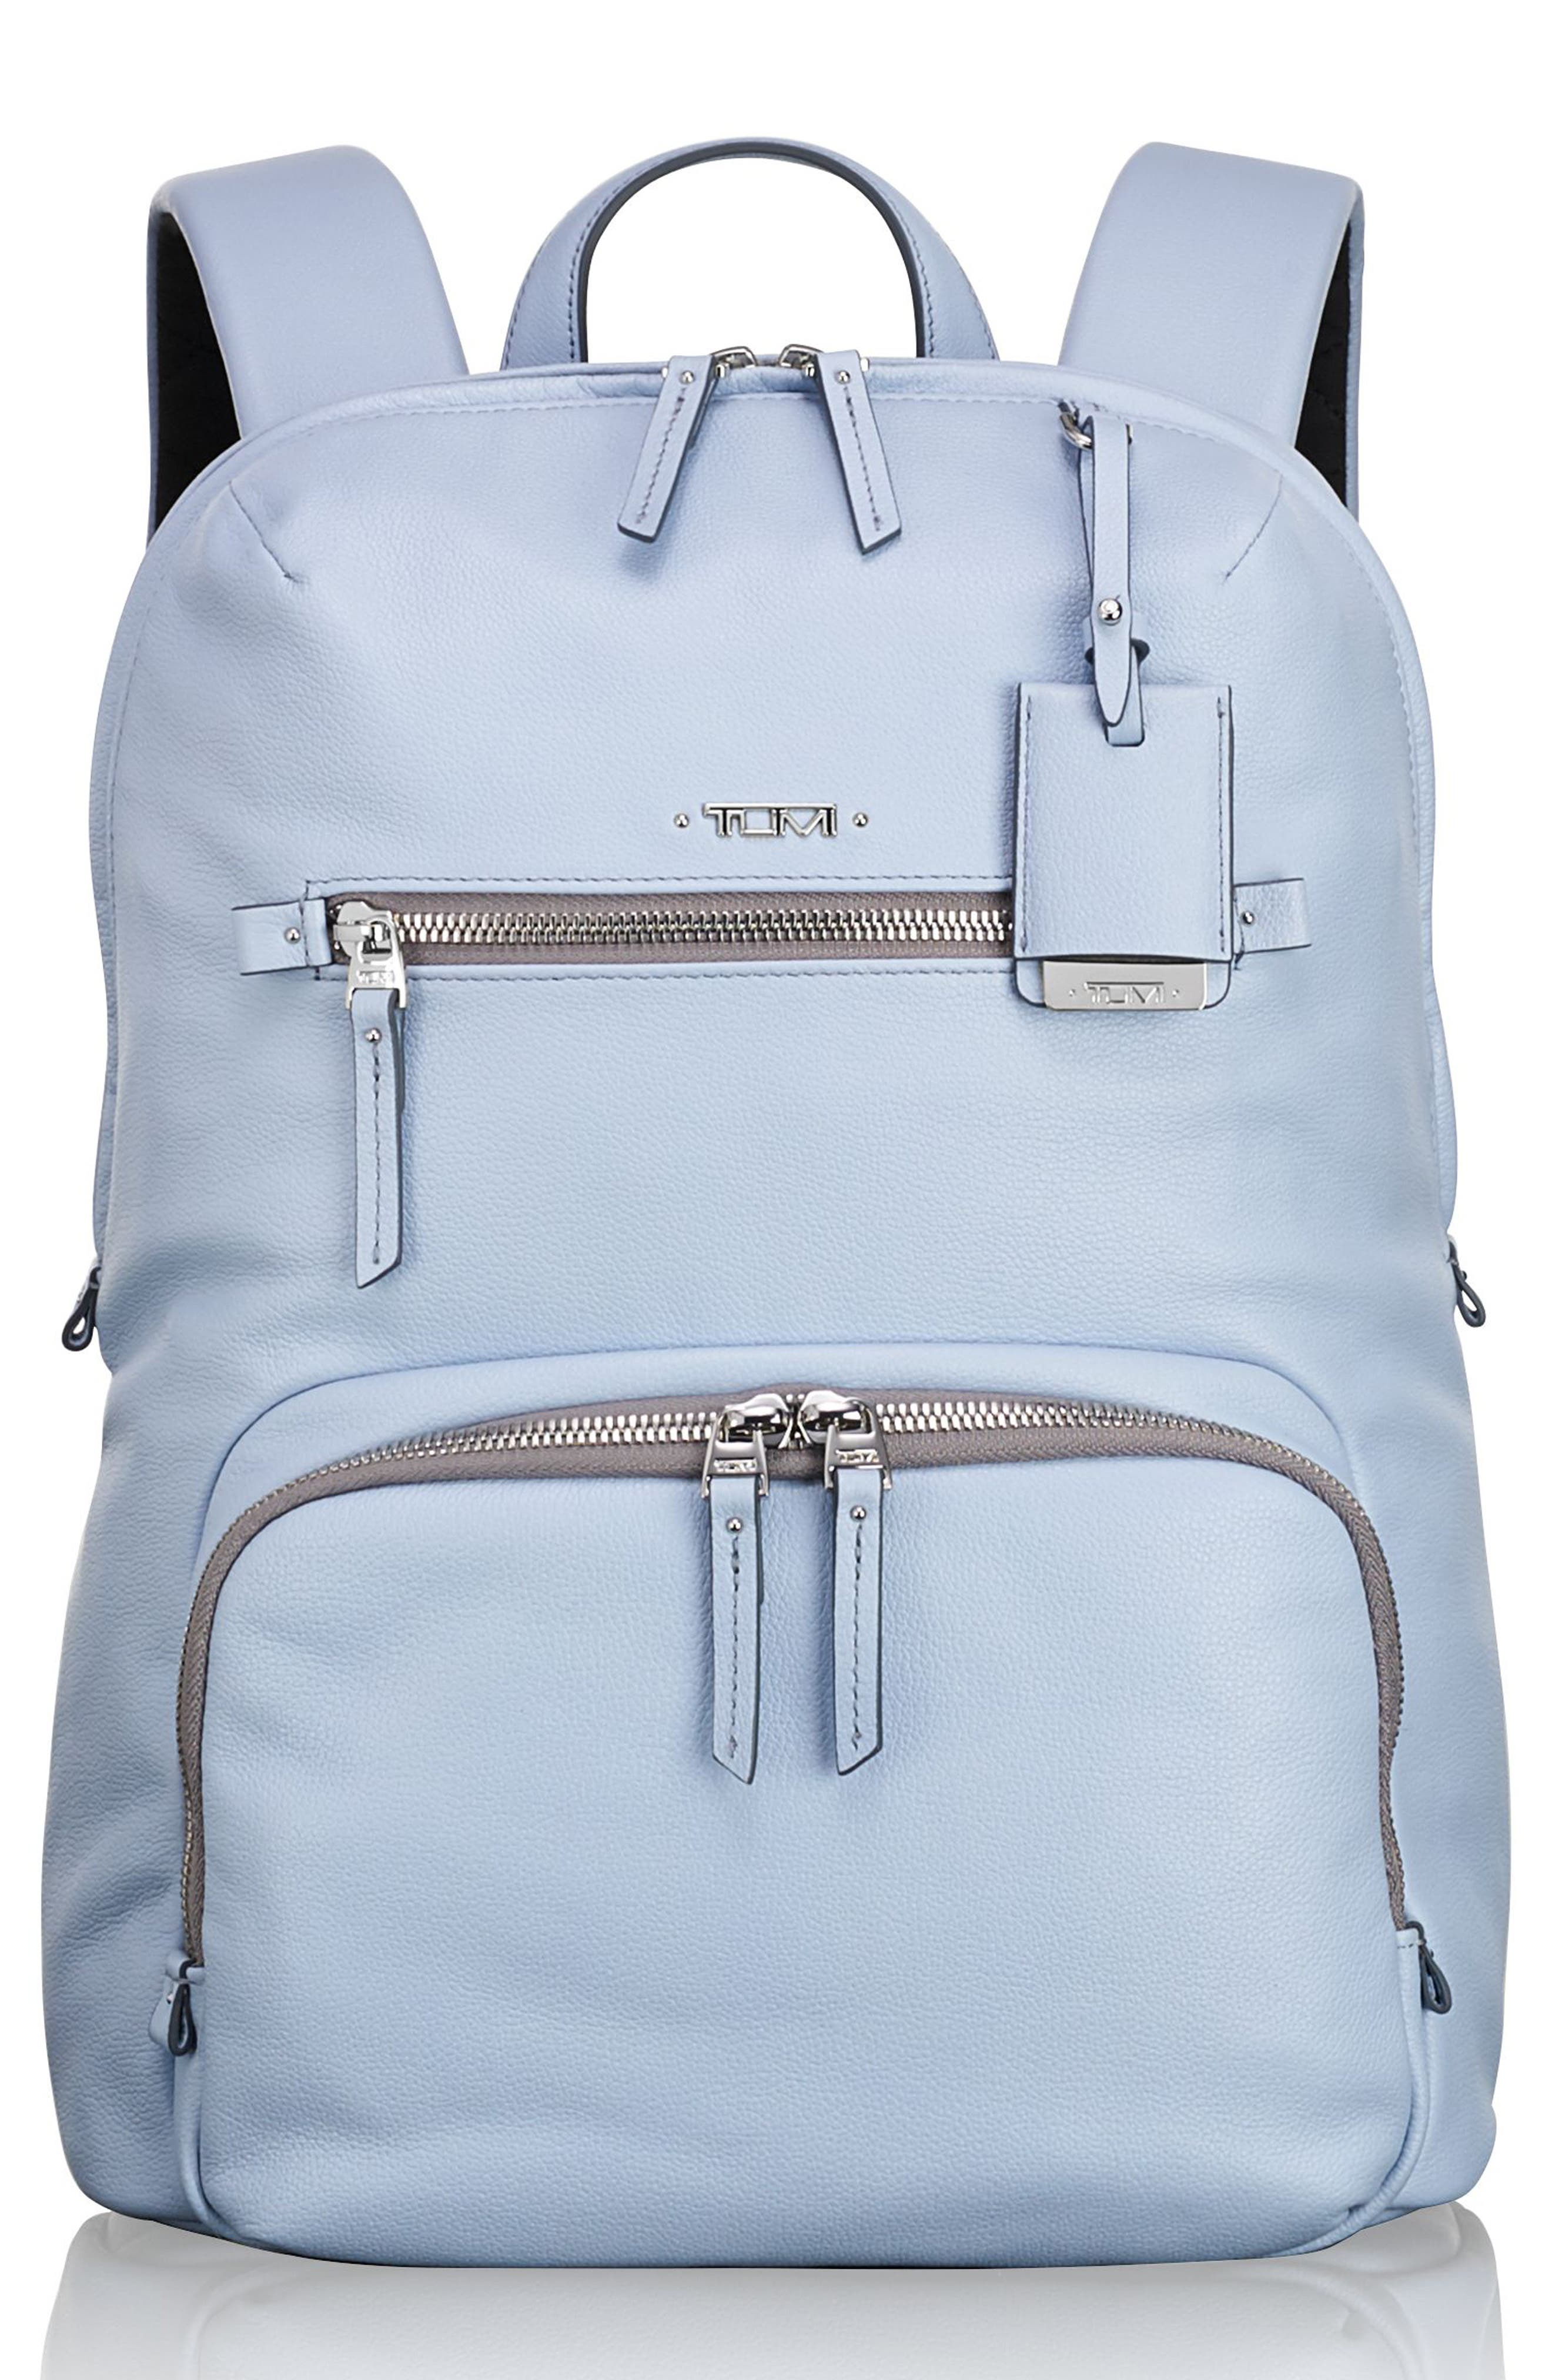 Voyageur Halle Leather Backpack,                         Main,                         color,